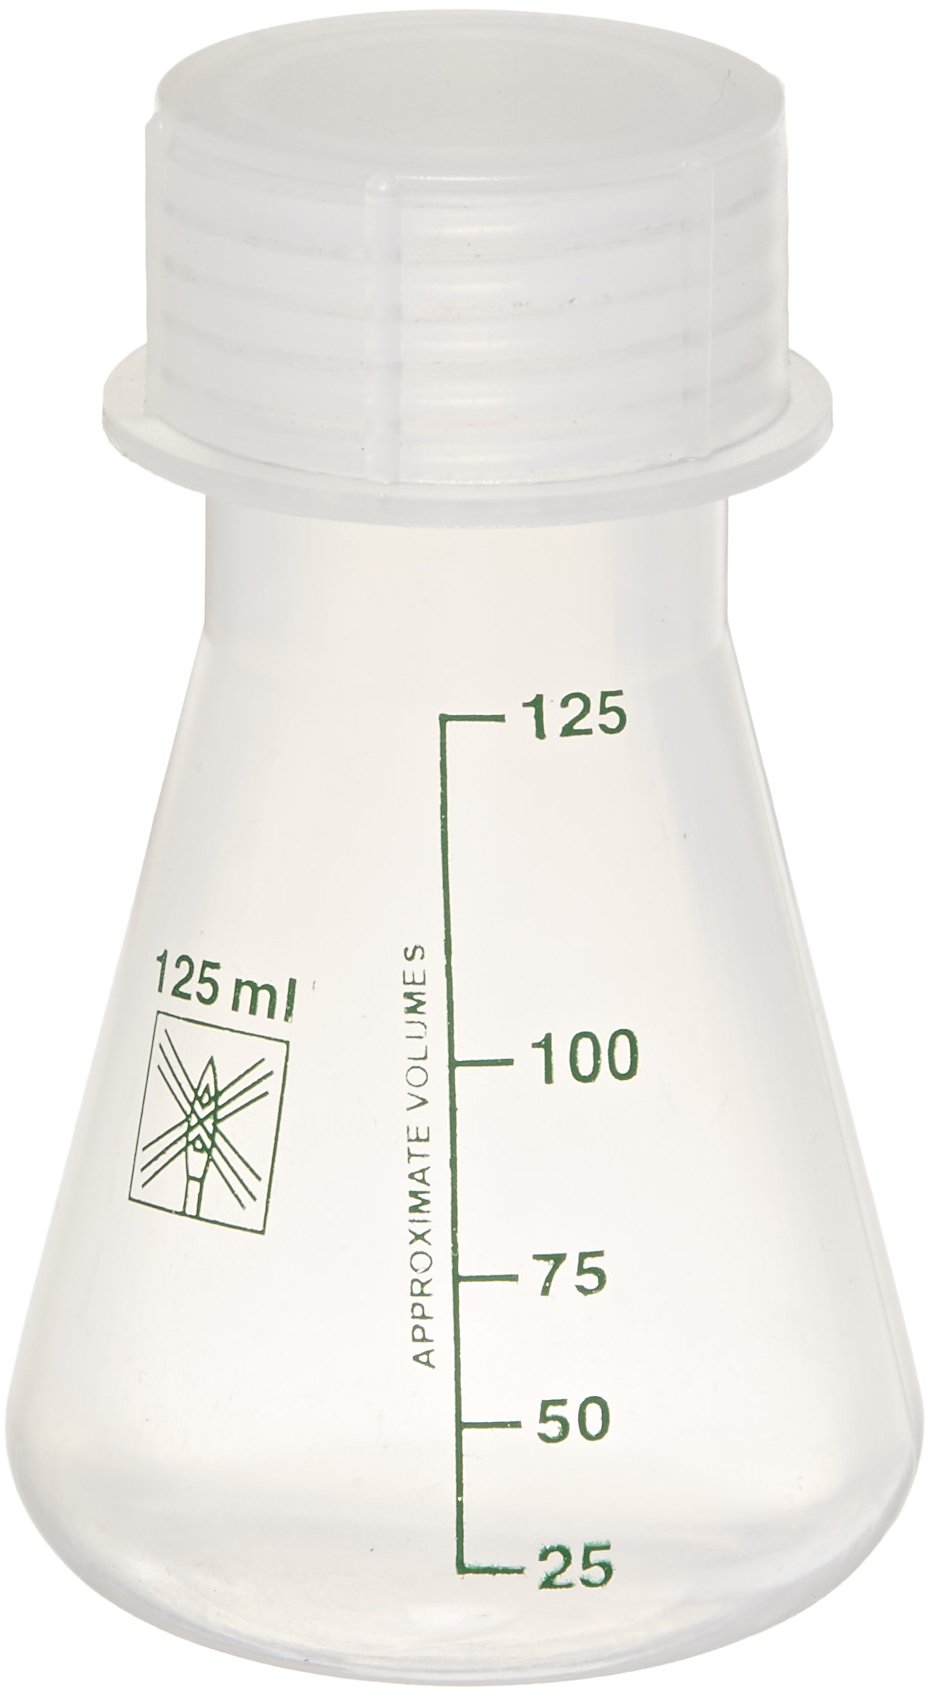 United Scientific FP0125 Polypropylene Wide Mouth Conical Erlenmeyer Flask, 125ml Capacity (Pack of 12)